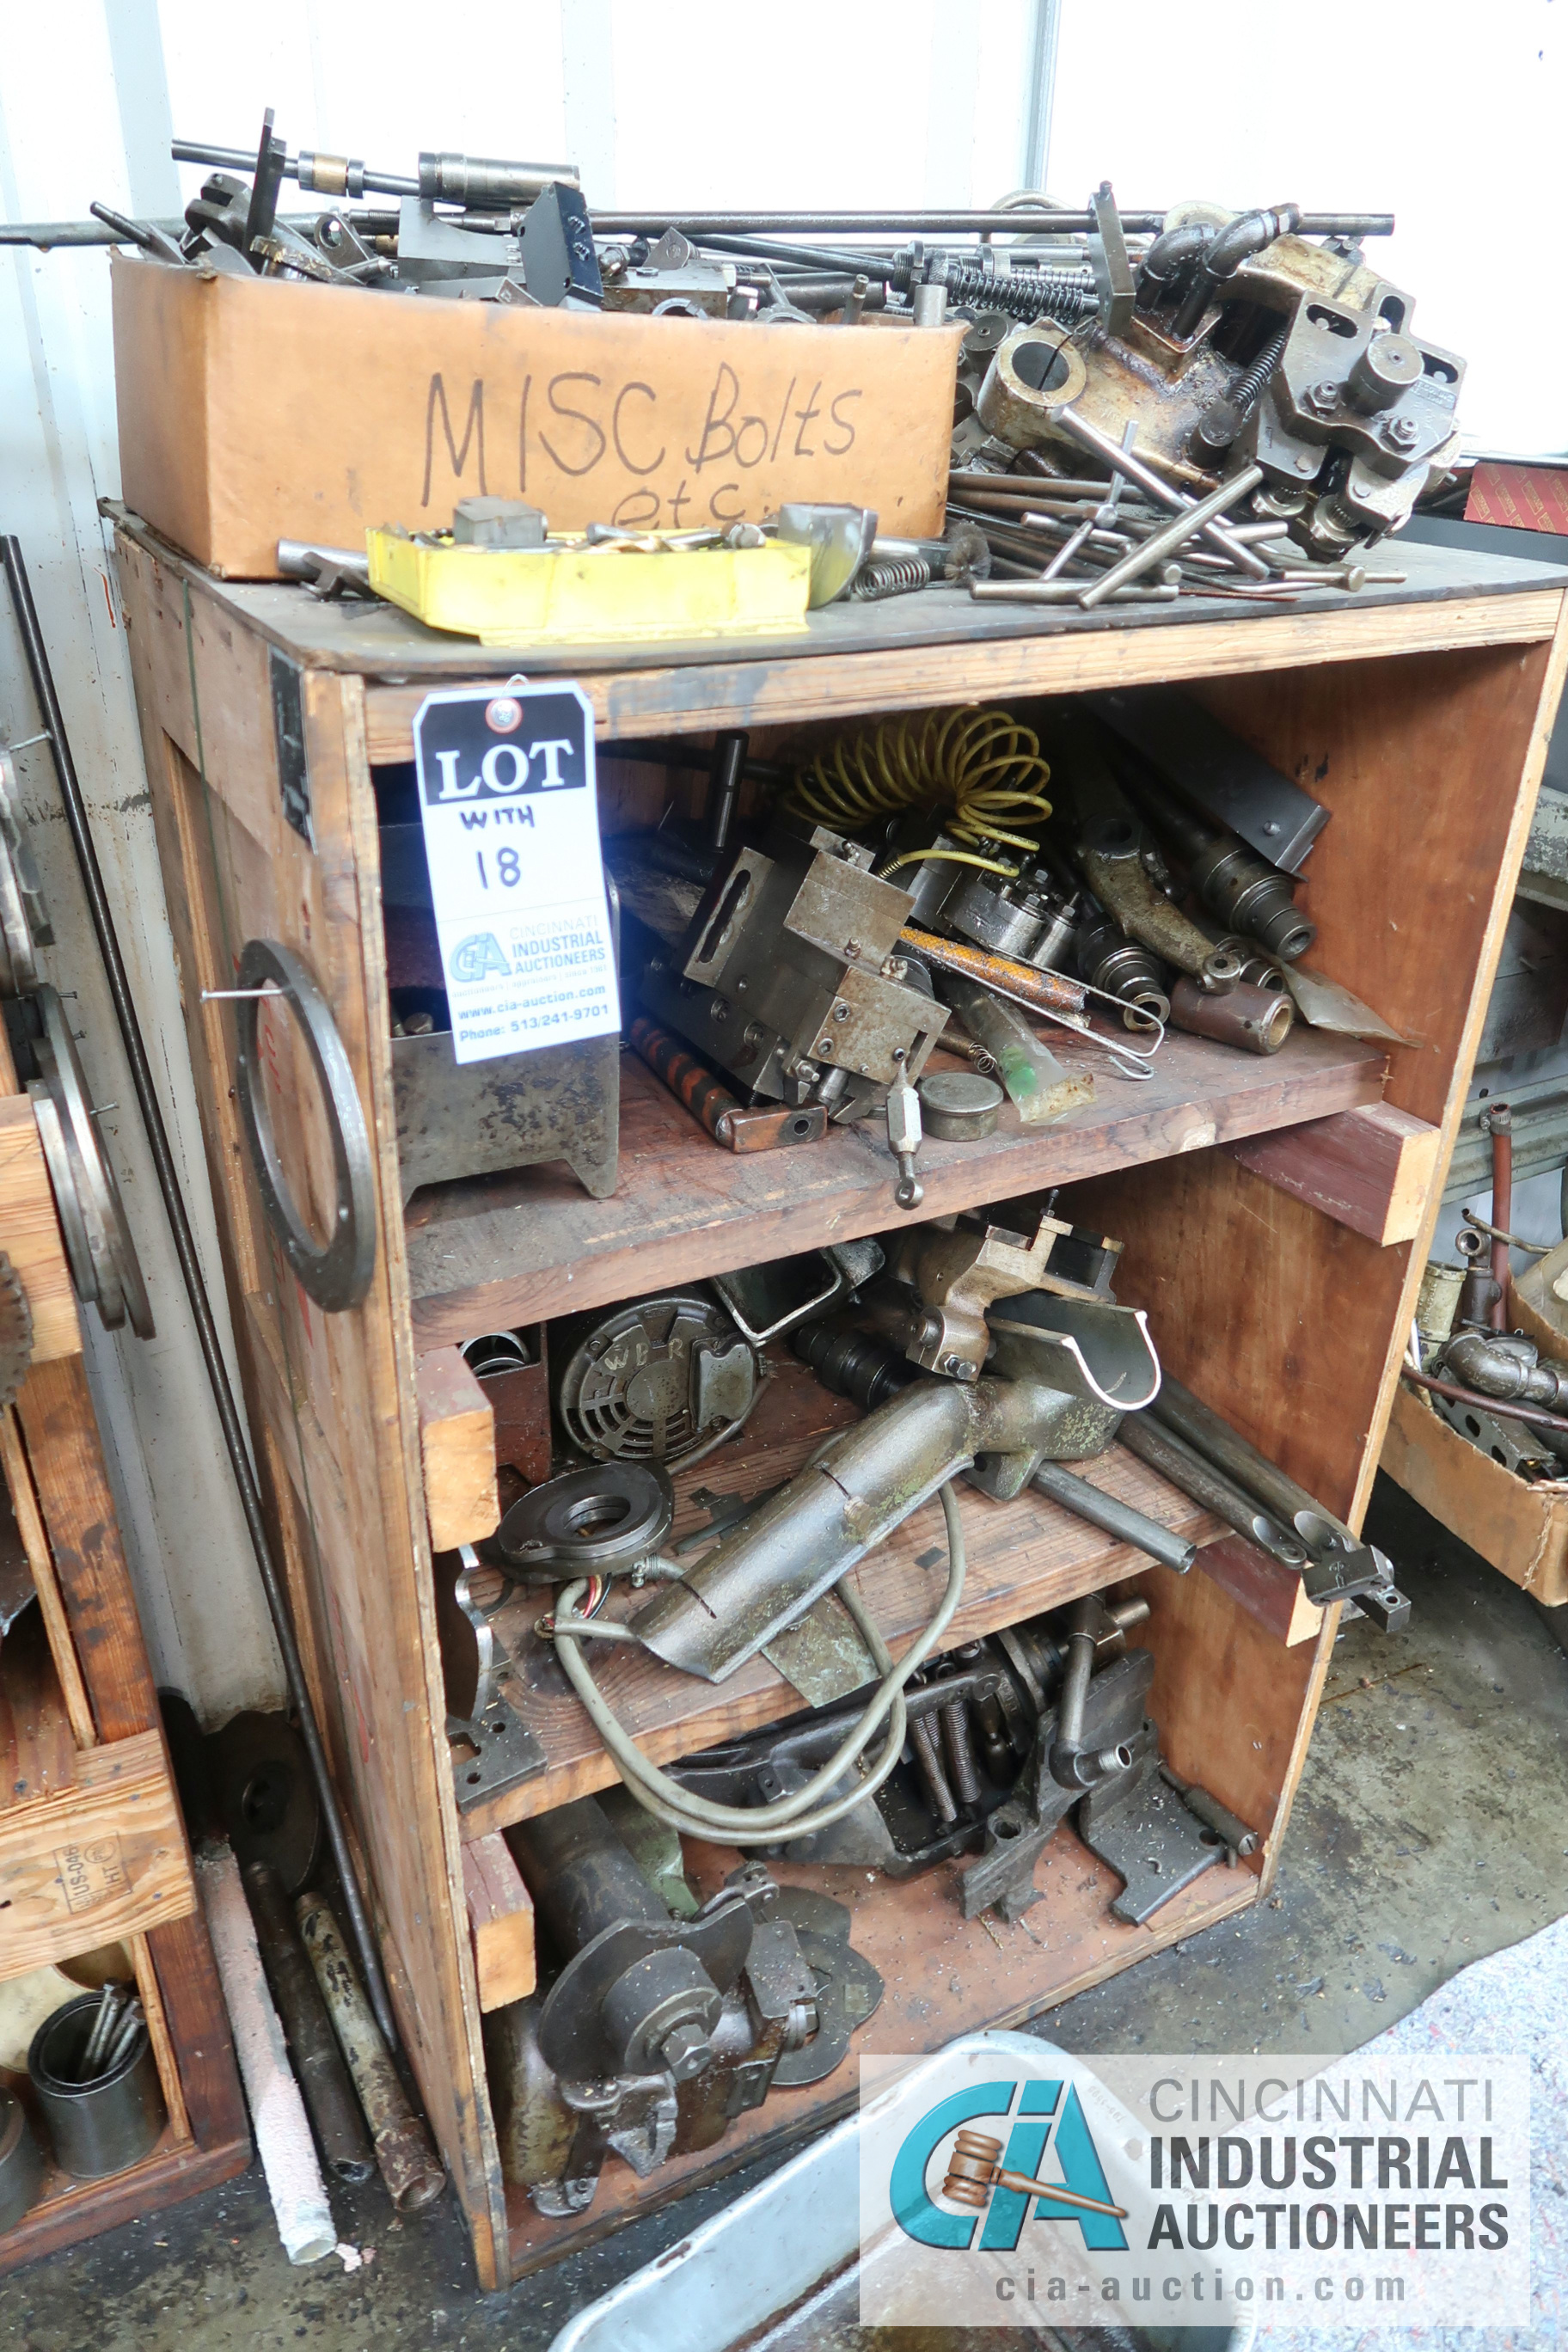 (LOT) LARGE ASSORTMENT MISCELLANEOUS DAVENPORT TOOLING, ATTACHMENTS, GEARS, CAMS AND OTHER RELATED - Image 8 of 21